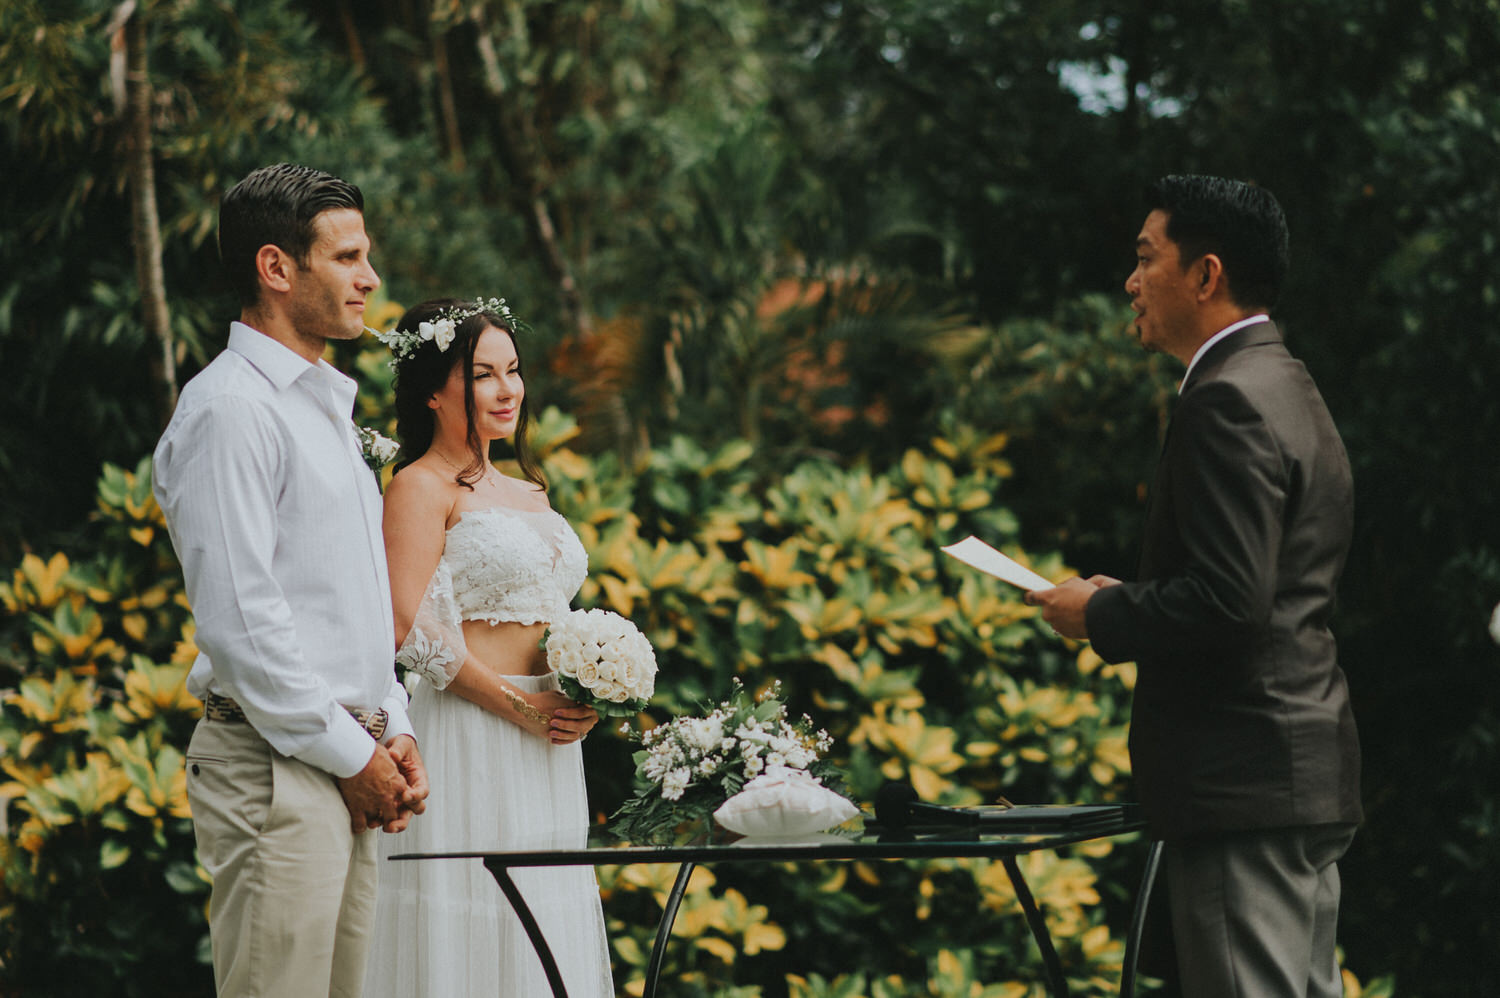 bali wedding - elopement - ubud wedding - diktatphotography - olga + Jason - 49